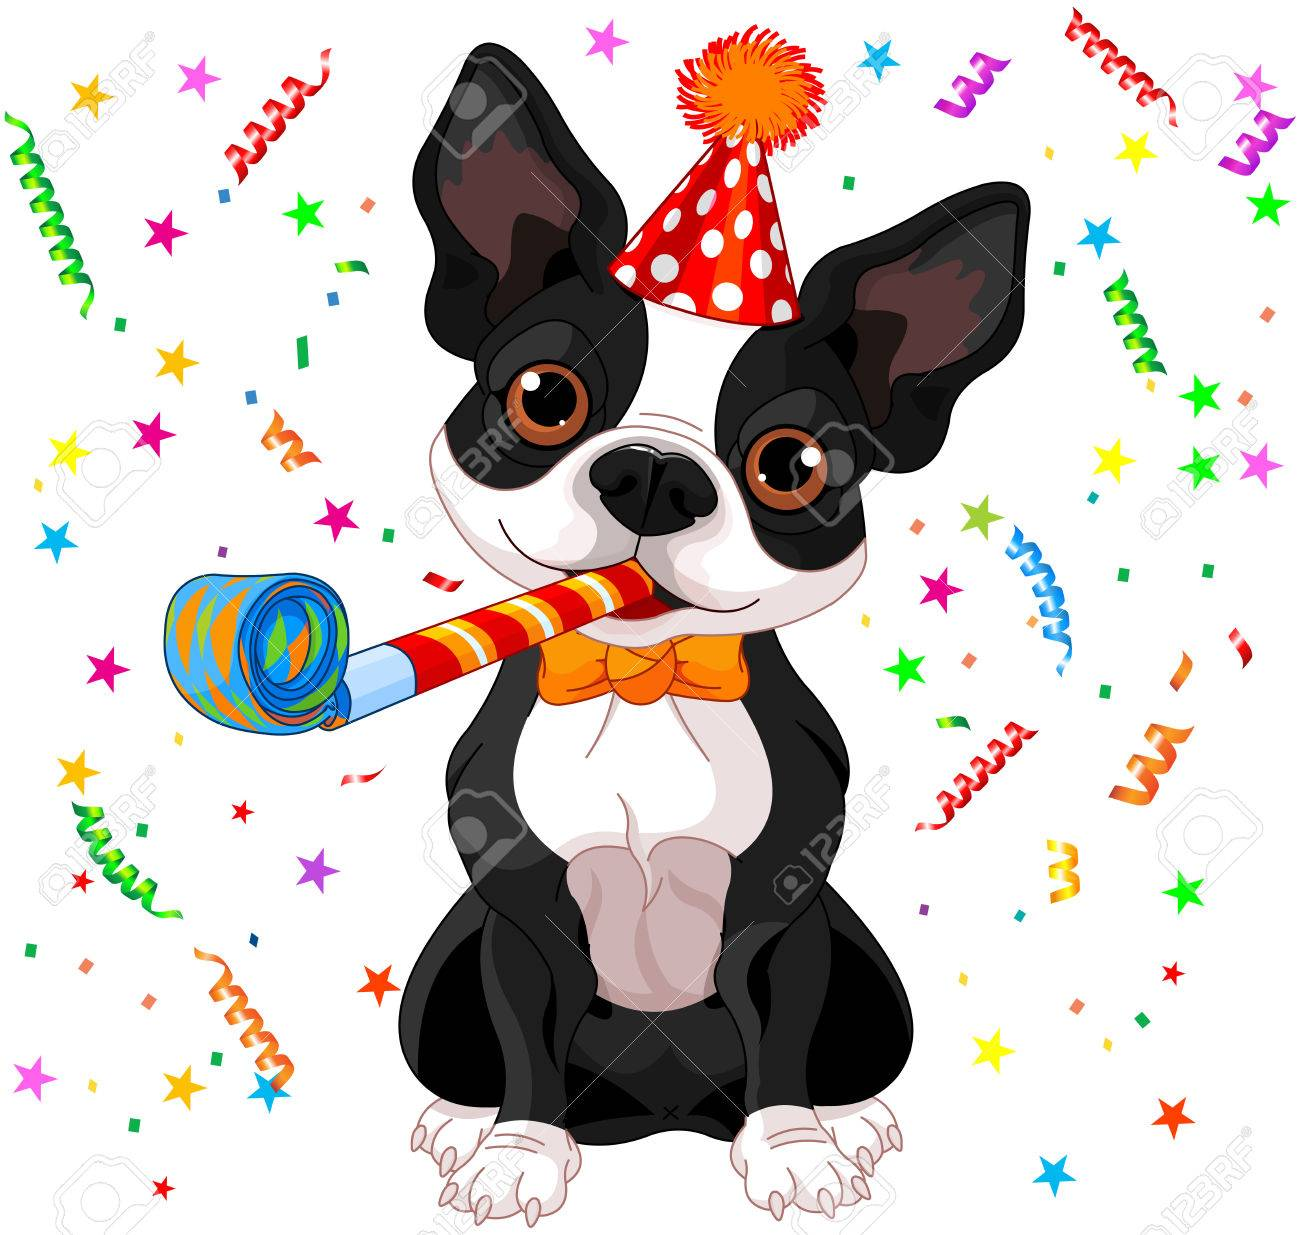 Choix de la cage/caisse de transport - Page 8 35588778-illustration-of-cute-boston-terrier-celebrating